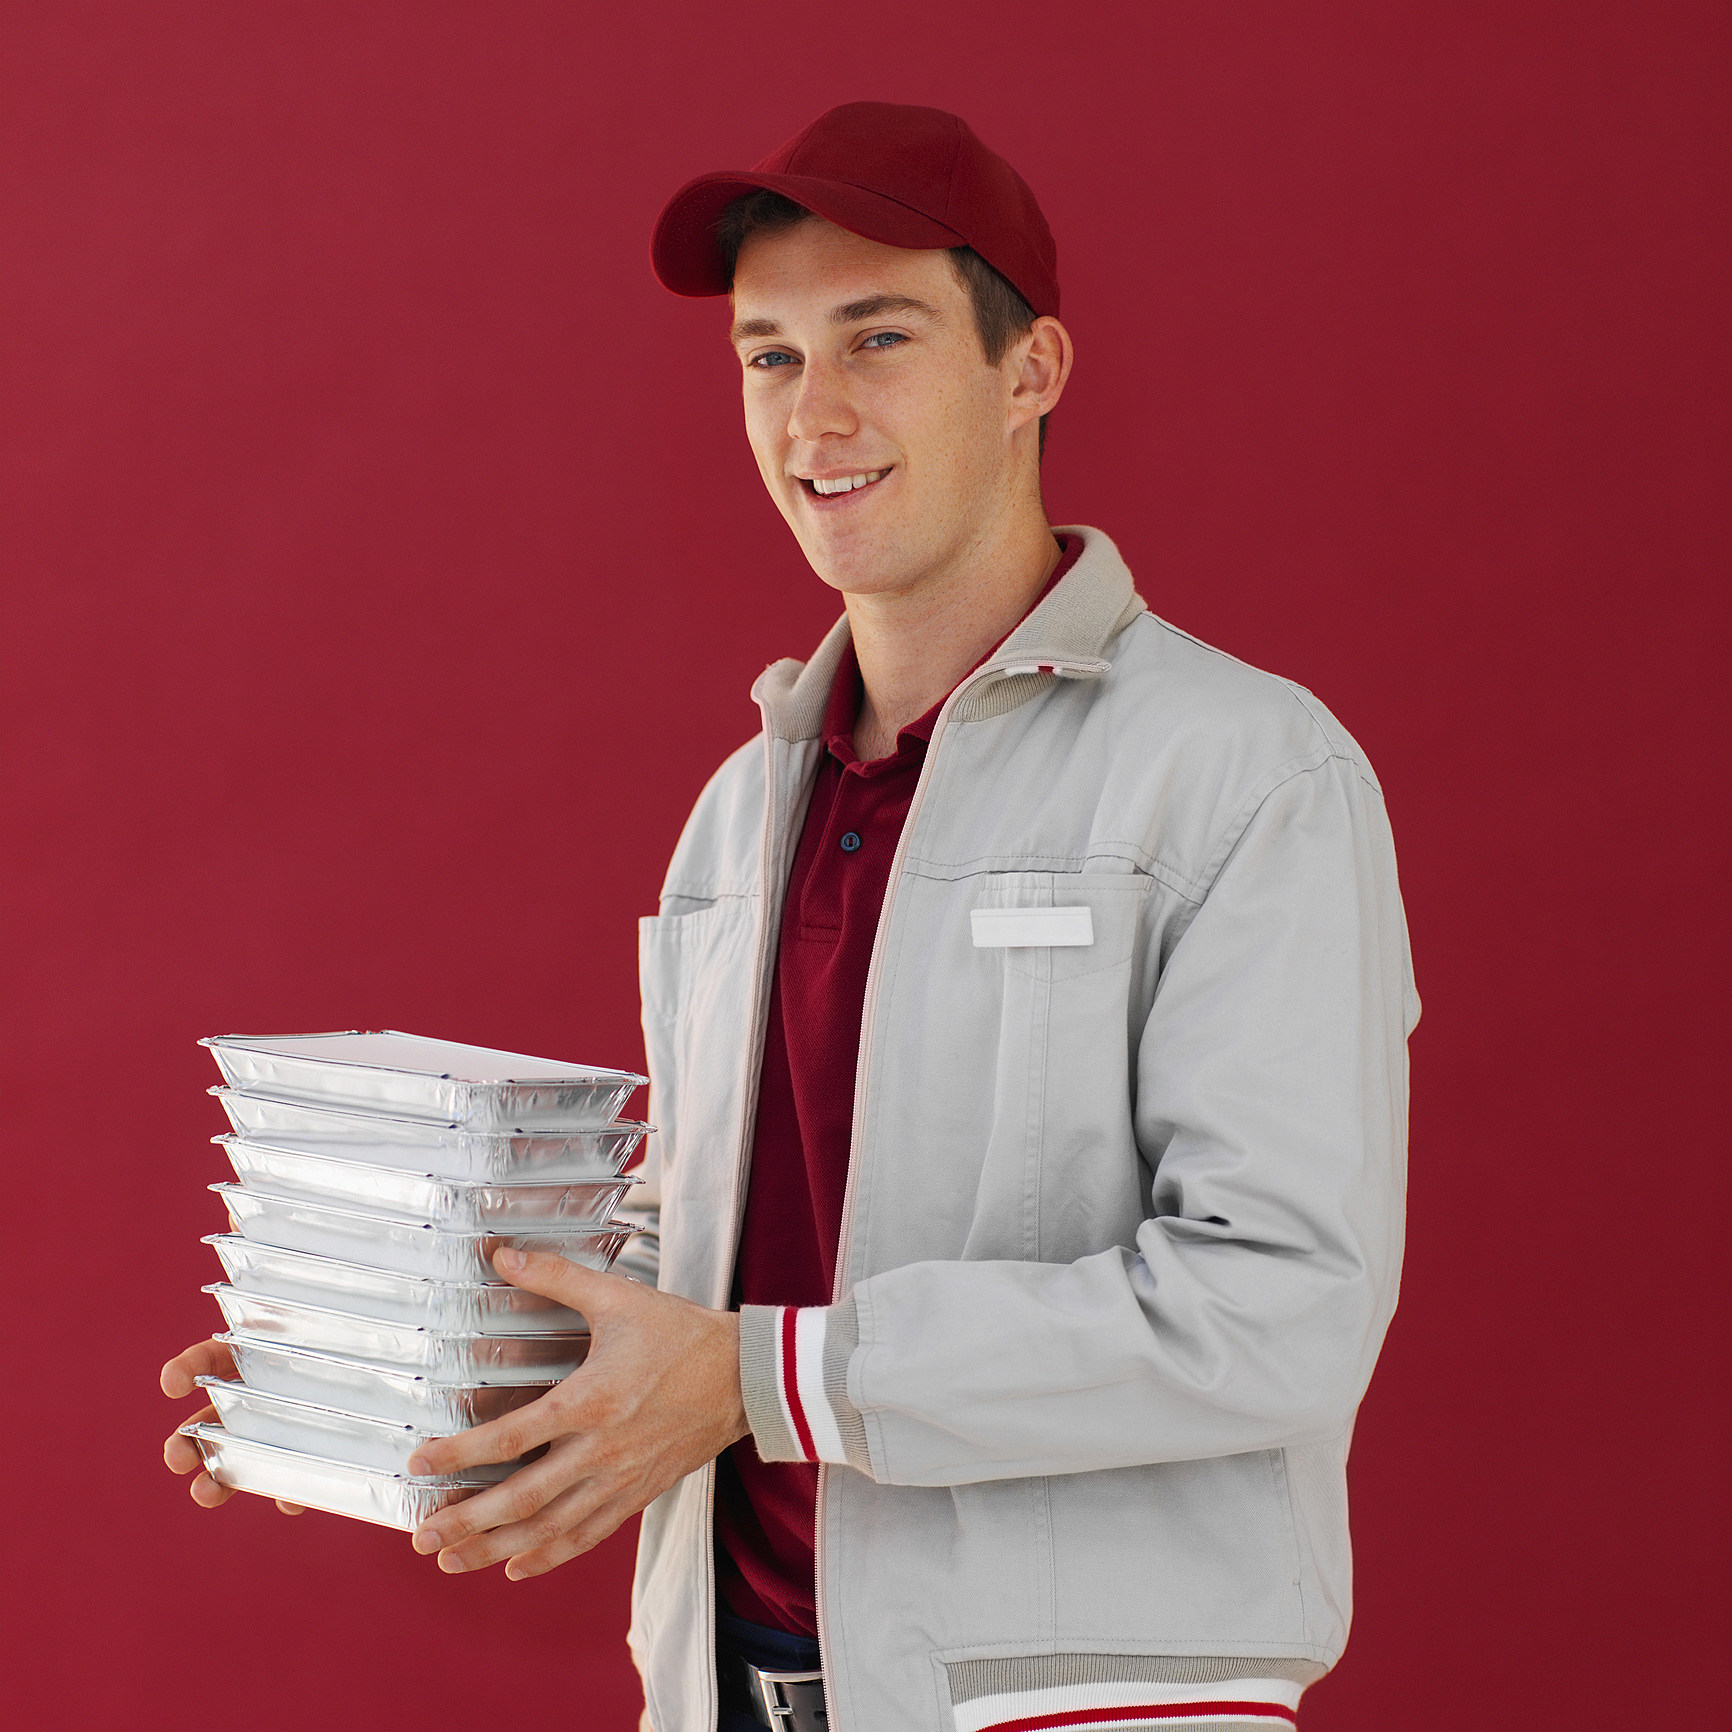 Close-up of delivery man holding fast-food